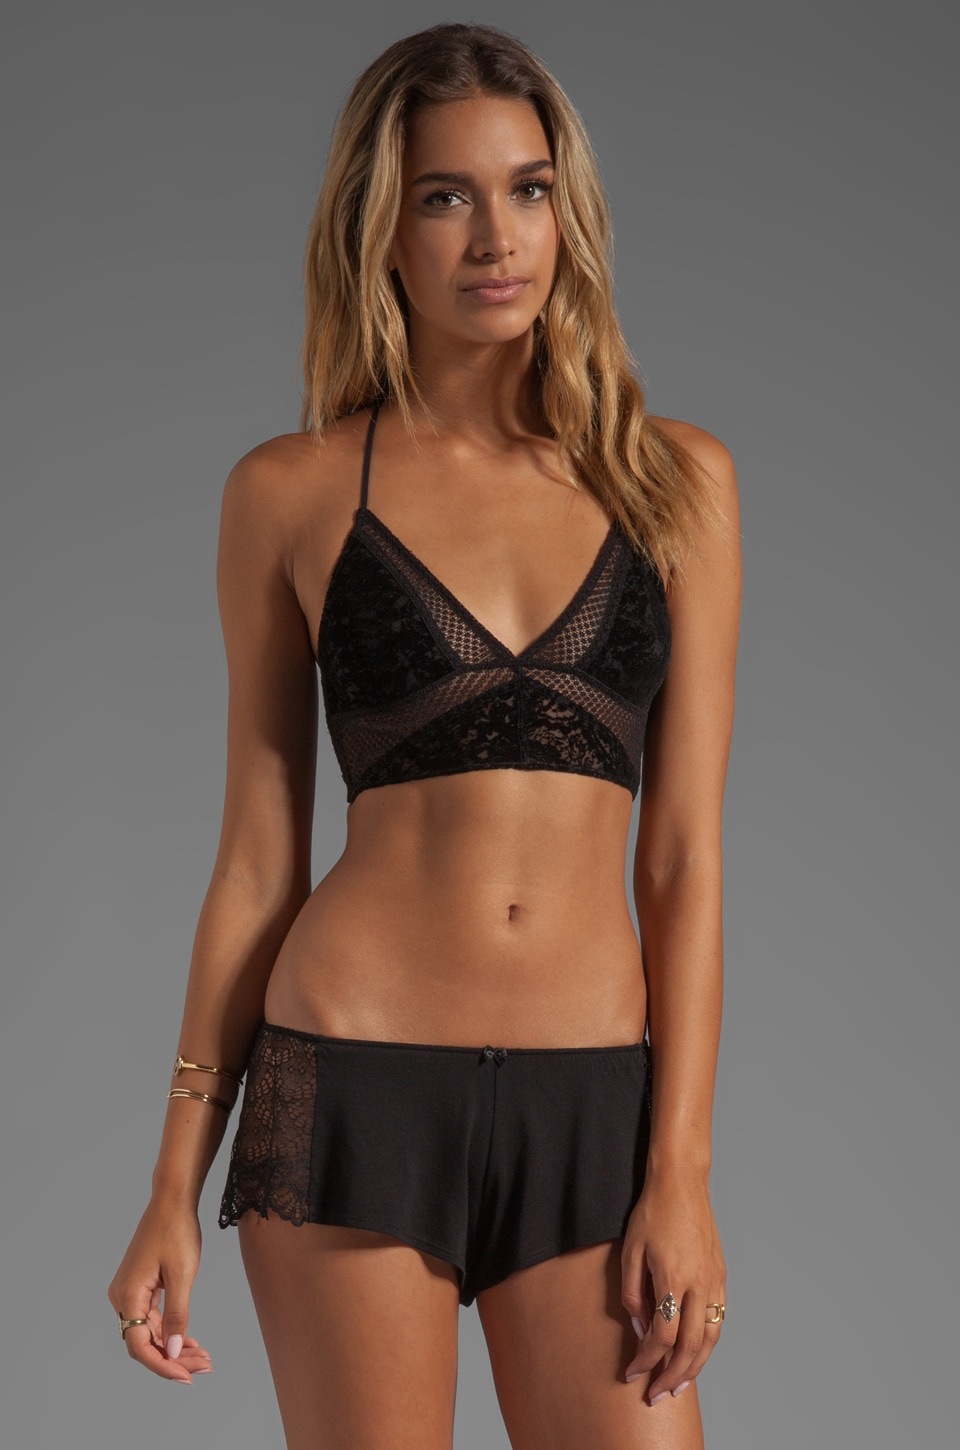 Free People Interview With A Vamp Crop Bra in Black